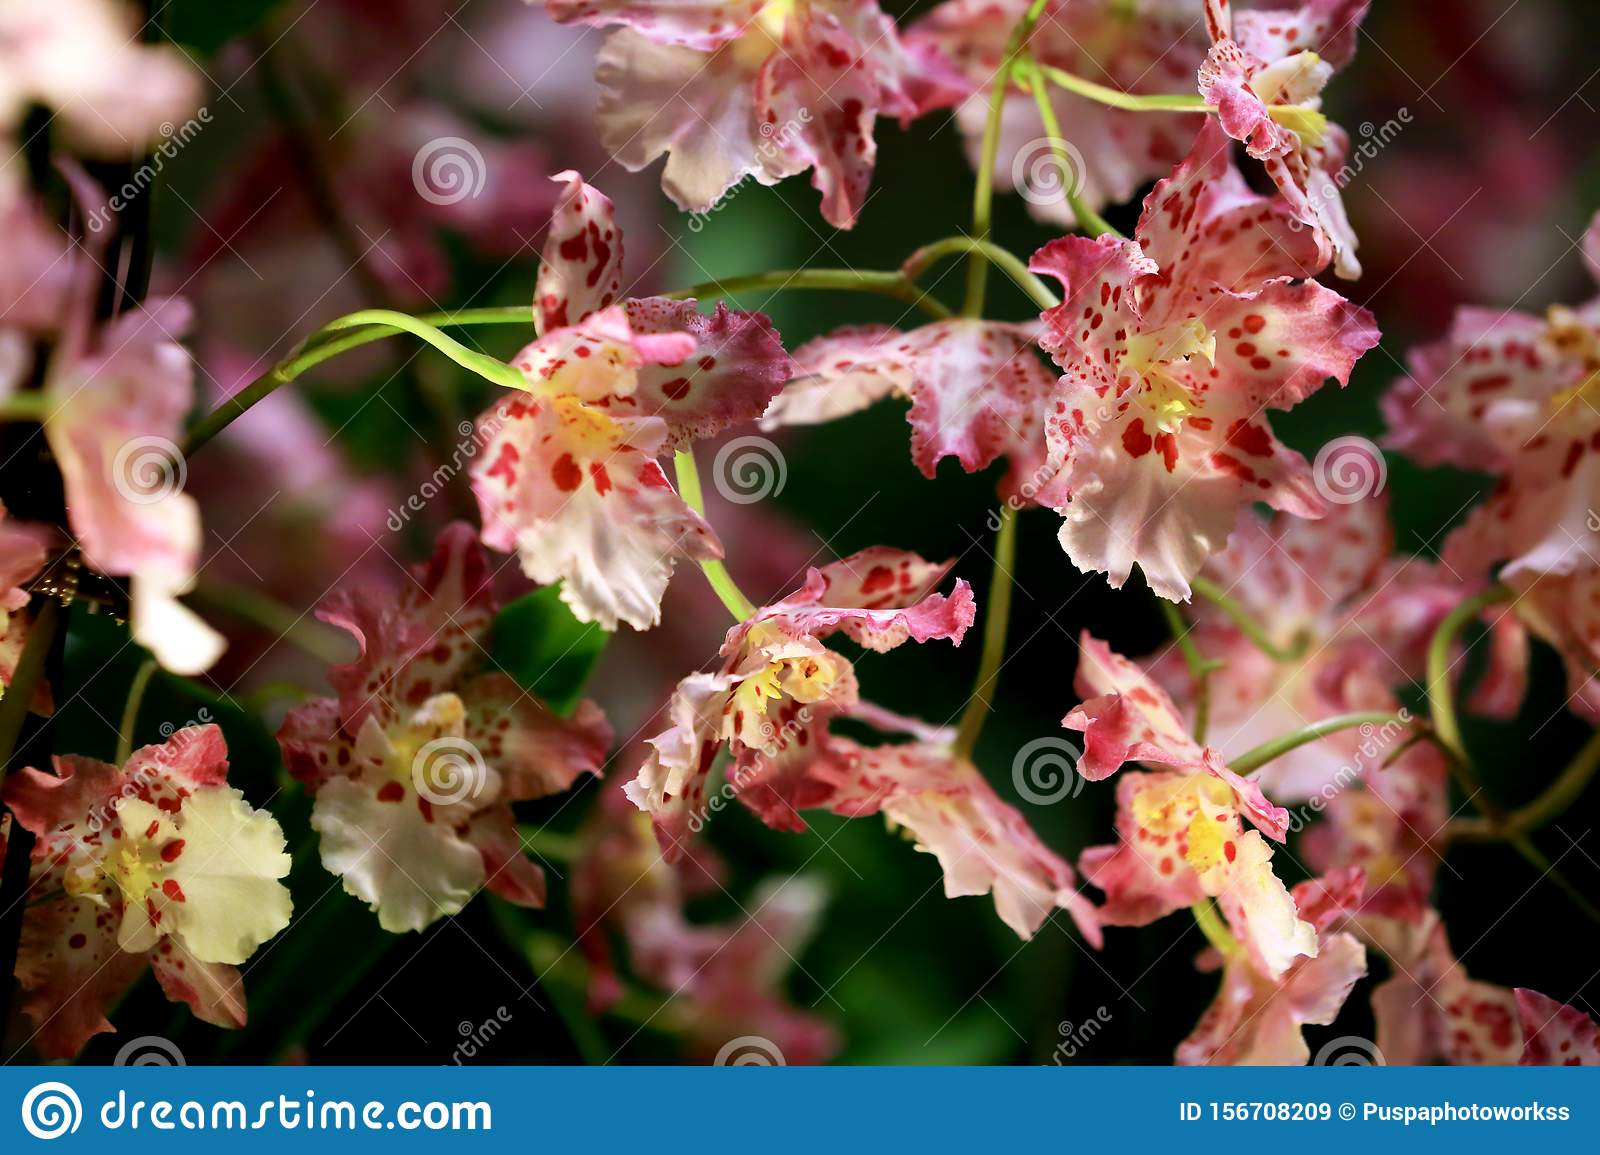 Beautiful Pink Dancing Lady Orchid or Oncidium With Natural Light.